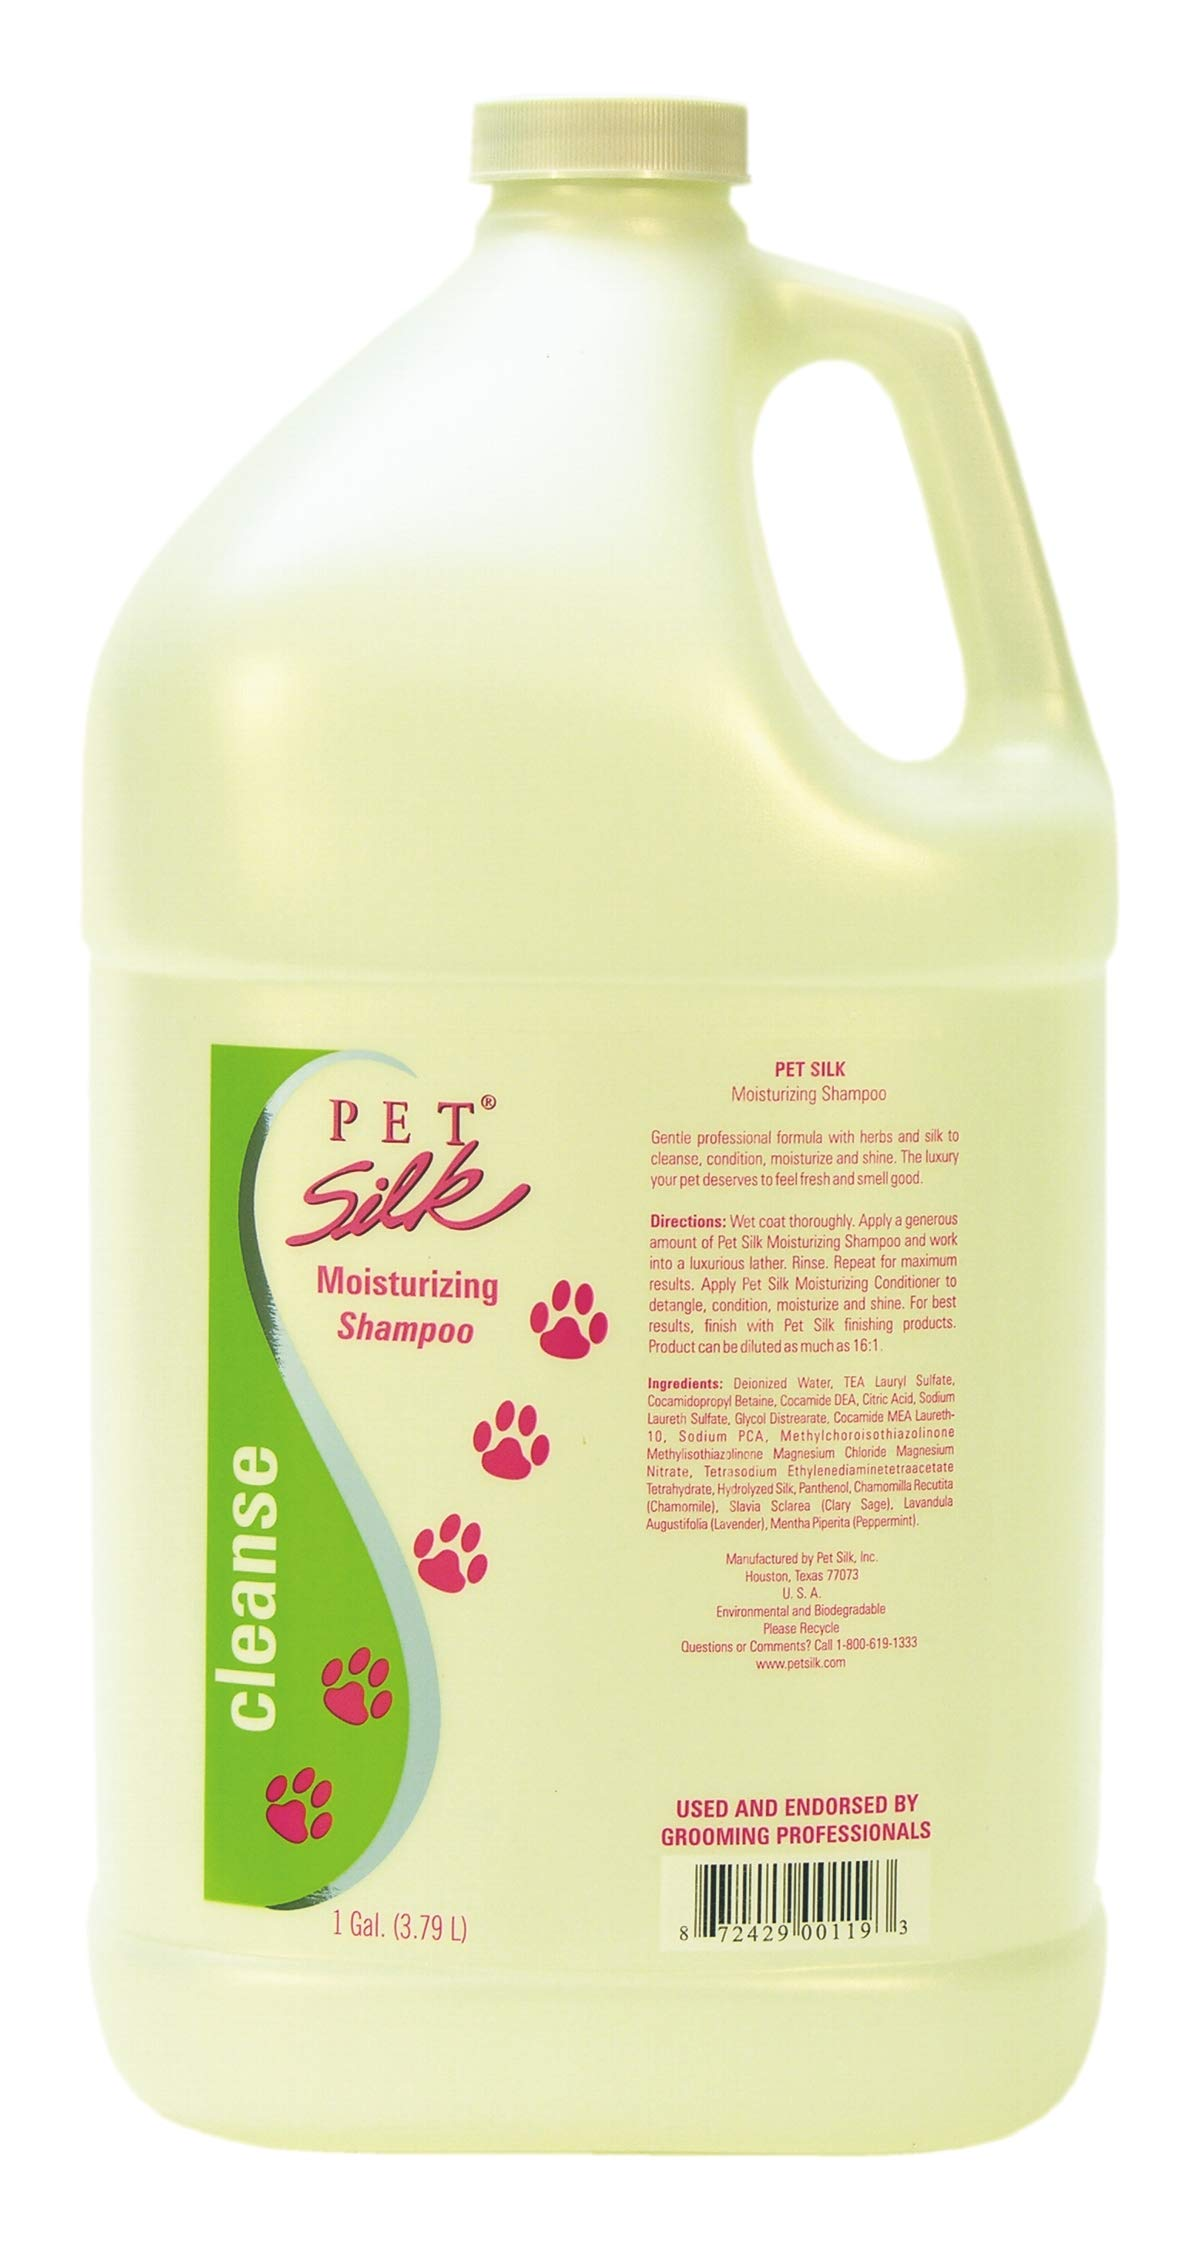 Pet Silk Moisturizing Shampoo (1 Gallon) - Dogs Moisturizing Shampoo for Dry, Itchy Skin - Infused with Silk, Vitamin E & Humectants - Pet Grooming Shampoo for Cats, Rabbits & Horse